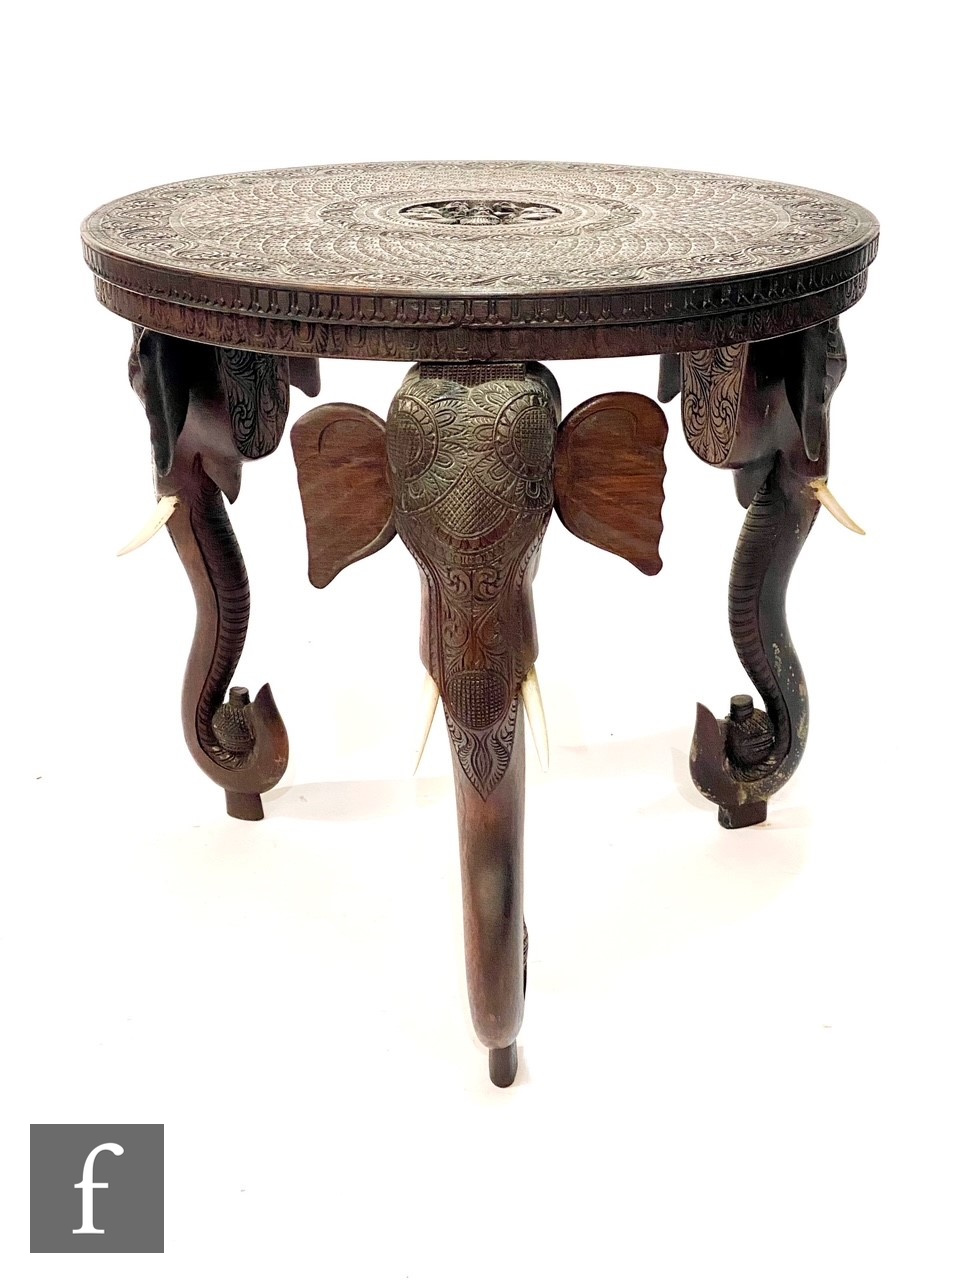 A 20th Century ebonised jardiniere stand on slender elephant style legs, diameter 36cm, and a